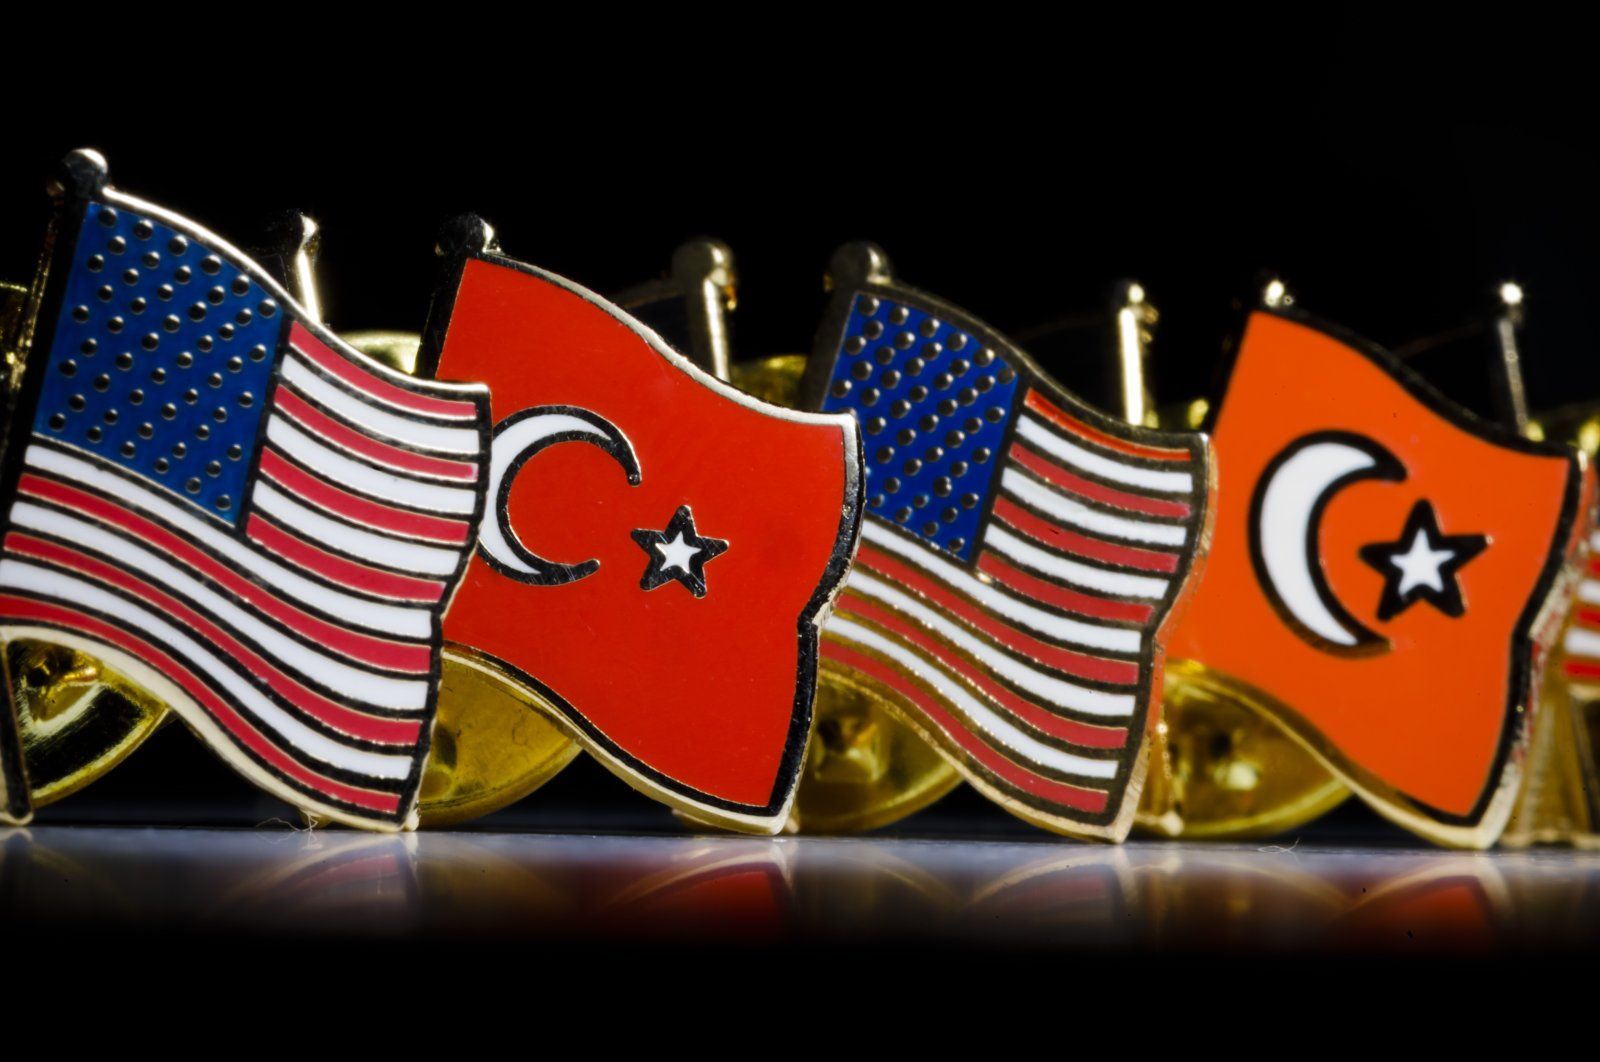 Pins with the national flags of Turkey and the United States are on display in Berlin, Germany, Feb. 18, 2019. (Photo by Getty Images)